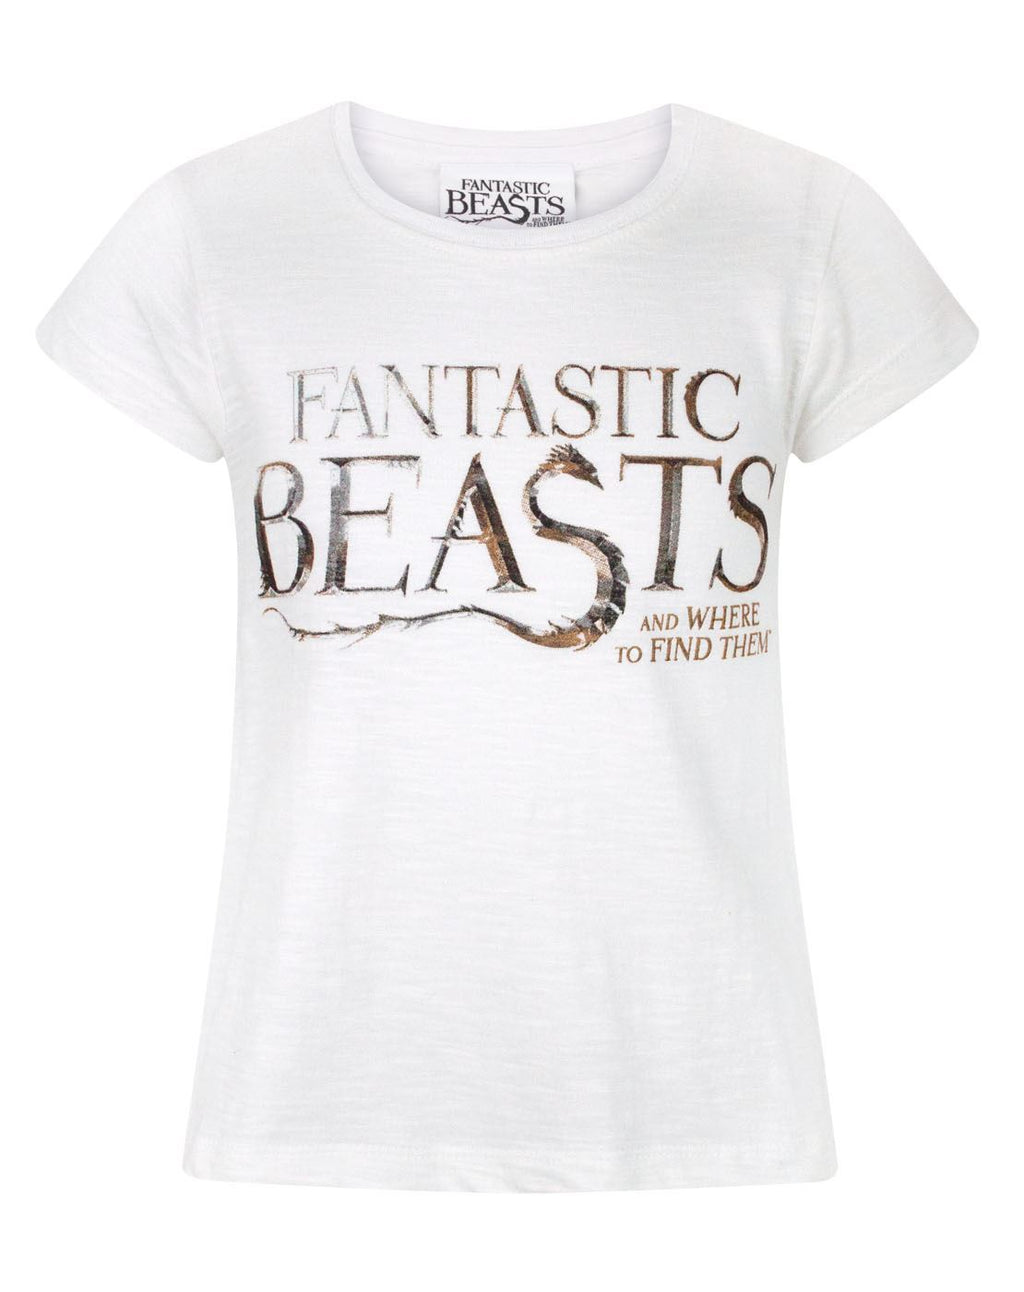 Fantastic Beasts And Where To Find Them Logo Girl's T-Shirt